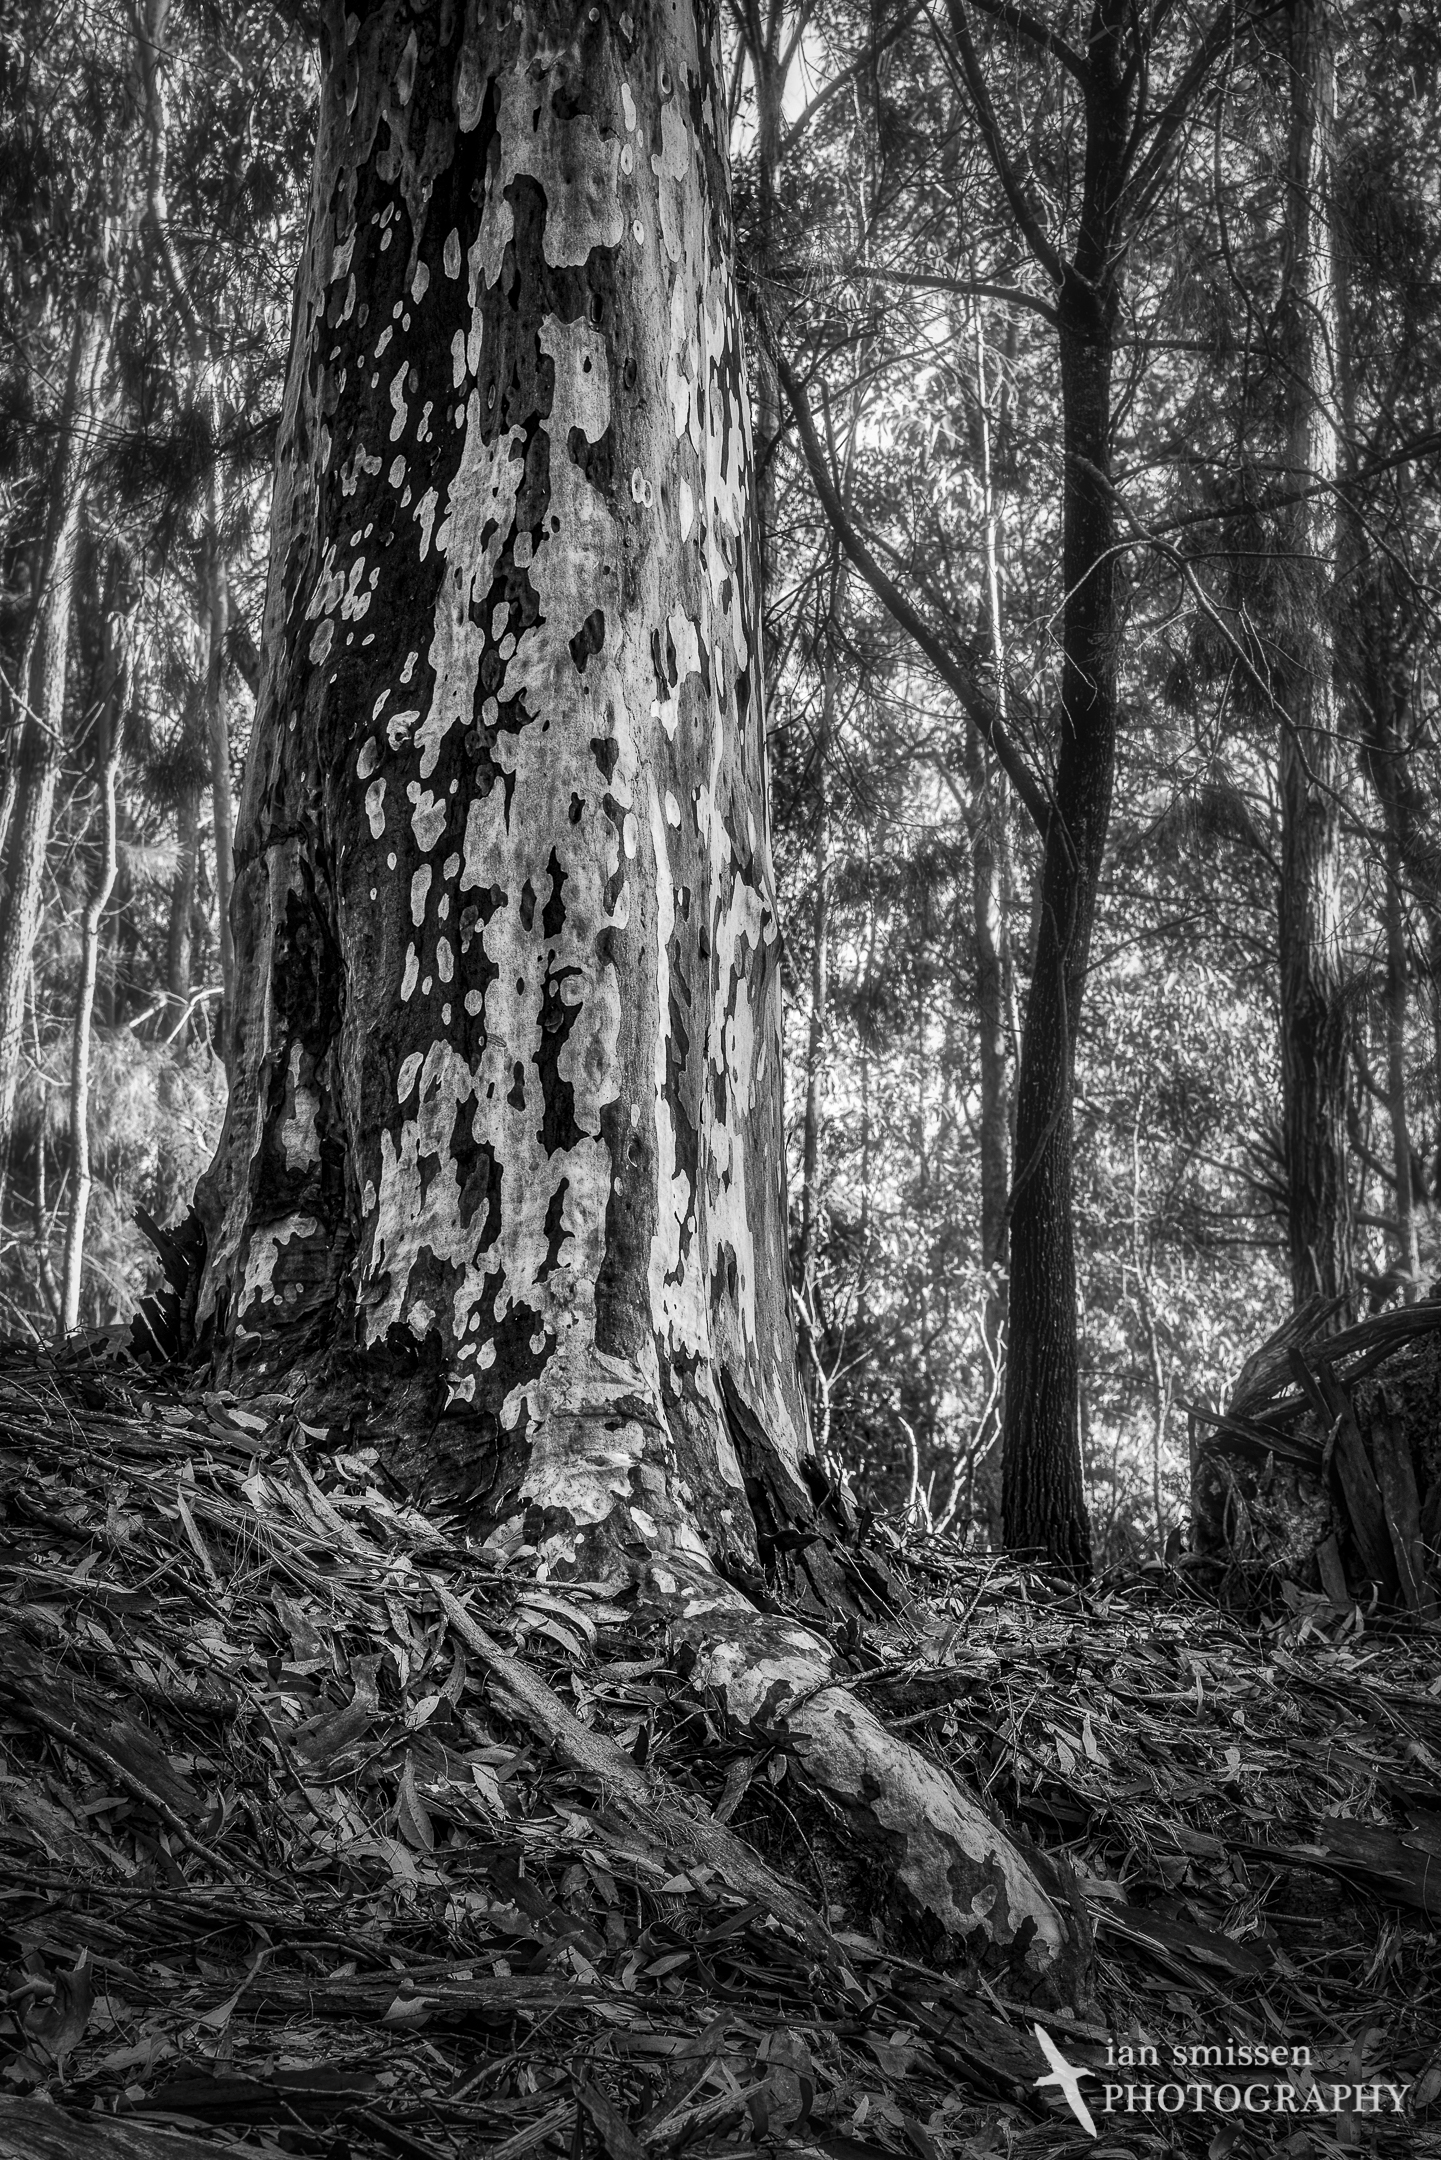 Spotted Gum 70mm, ISO 1600, 1/400 second @ f/11